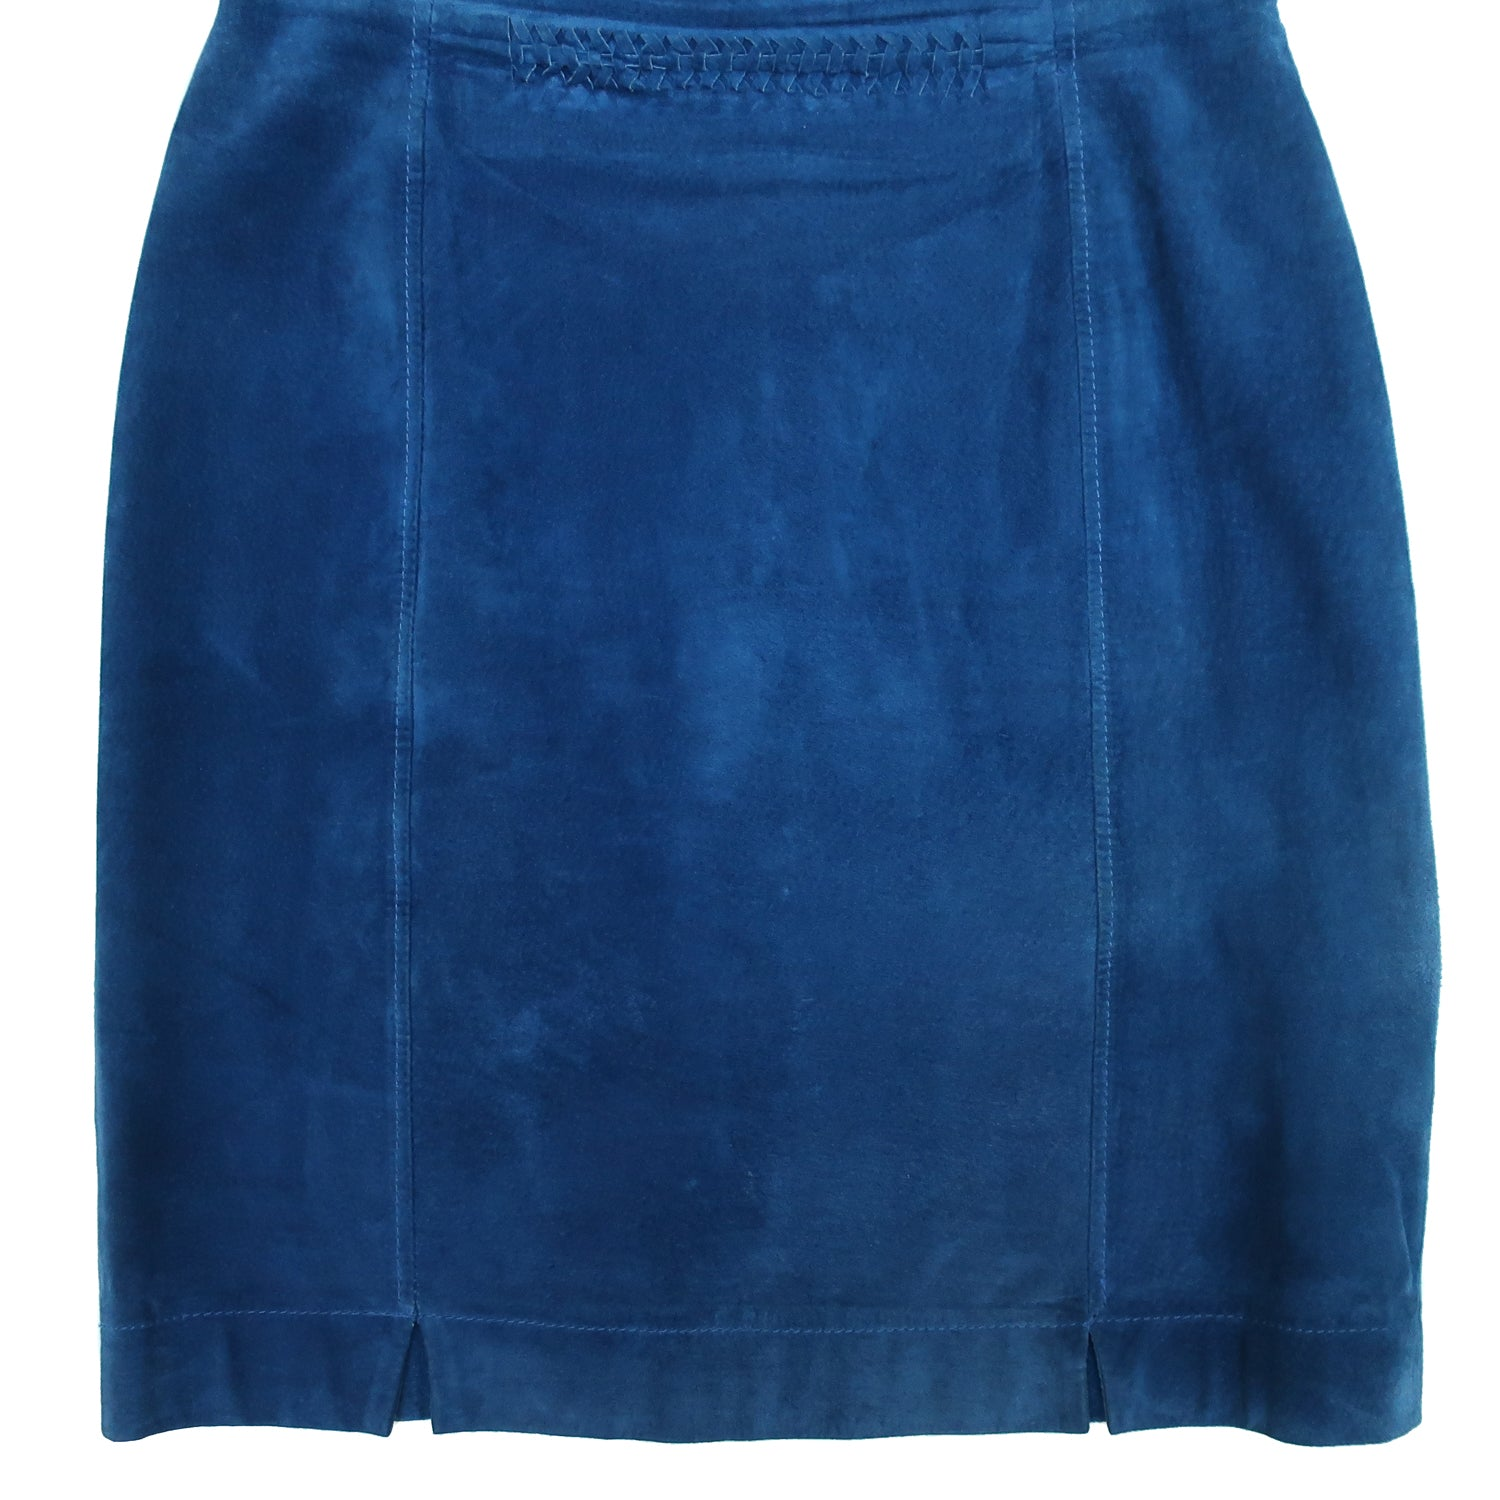 Second Room Vintage Clothing. Check out this amazing dark blue suede mini/above the knee high waisted skirt, with braided detail at the waist. It is fully lined, with two front slits, small back slit, and a back zipper with hook and eye closure. Free North American shipping on all orders.